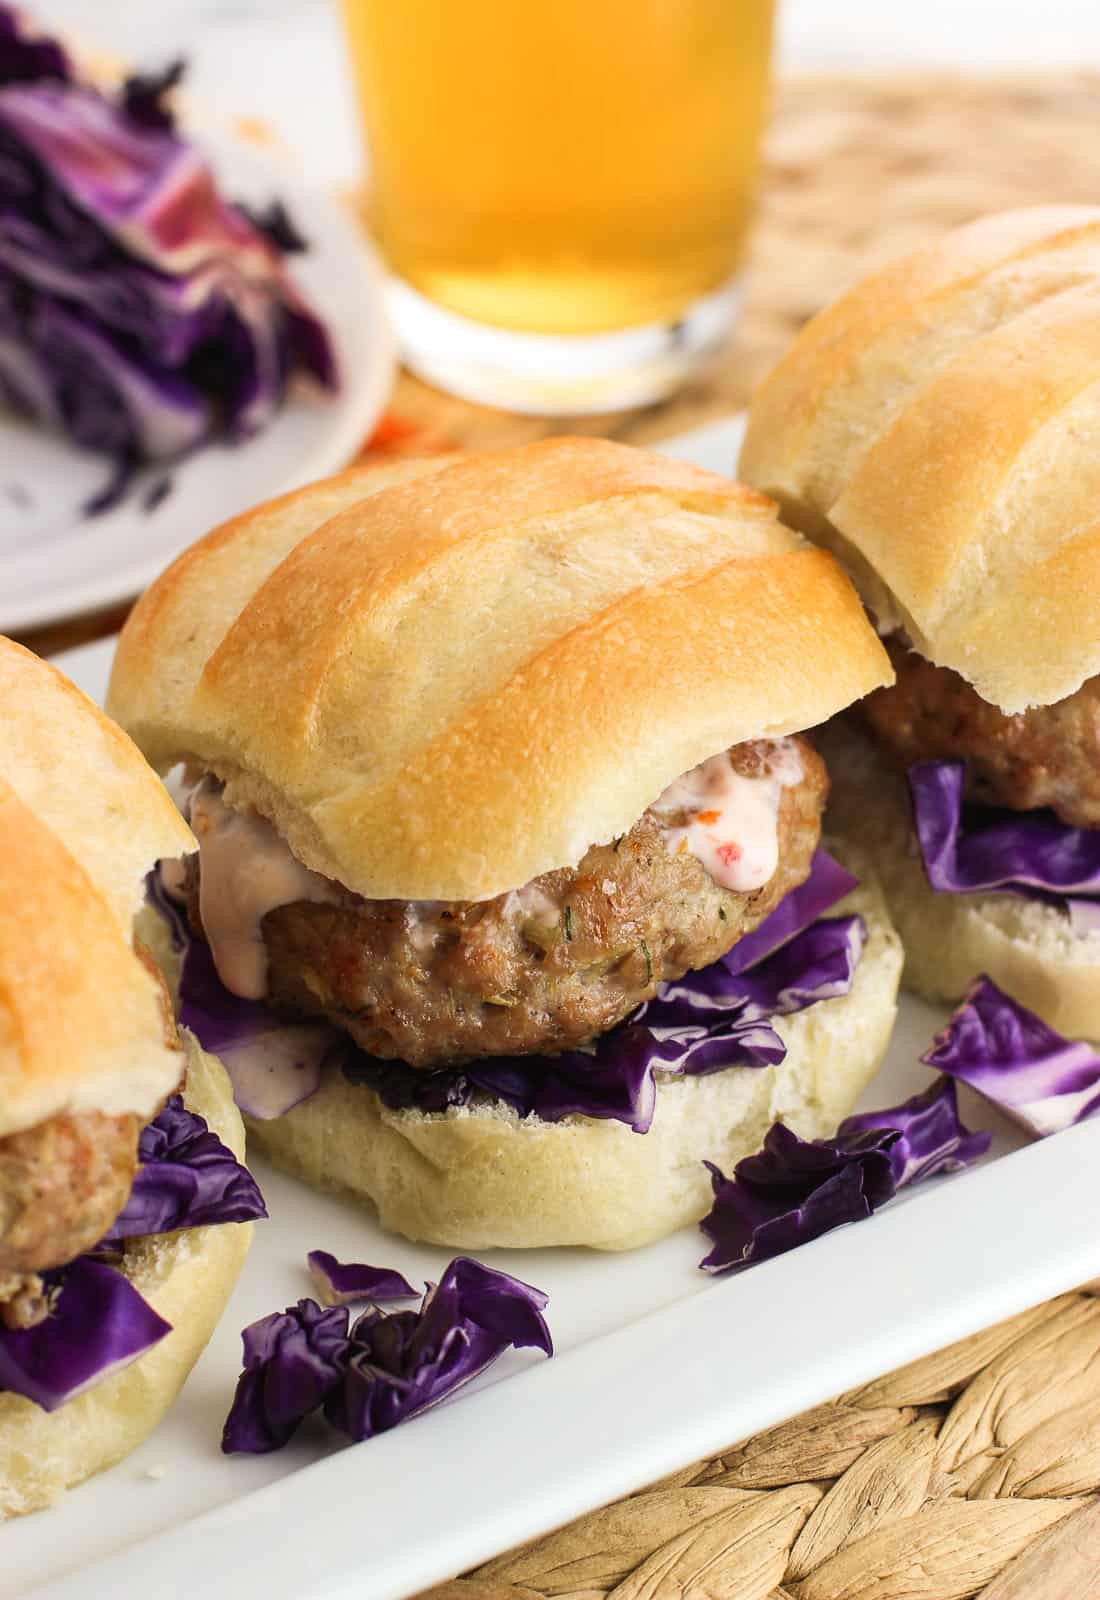 Three pork burger sliders on a rectangular tray, each on slider buns with red cabbage and chili garlic sauce